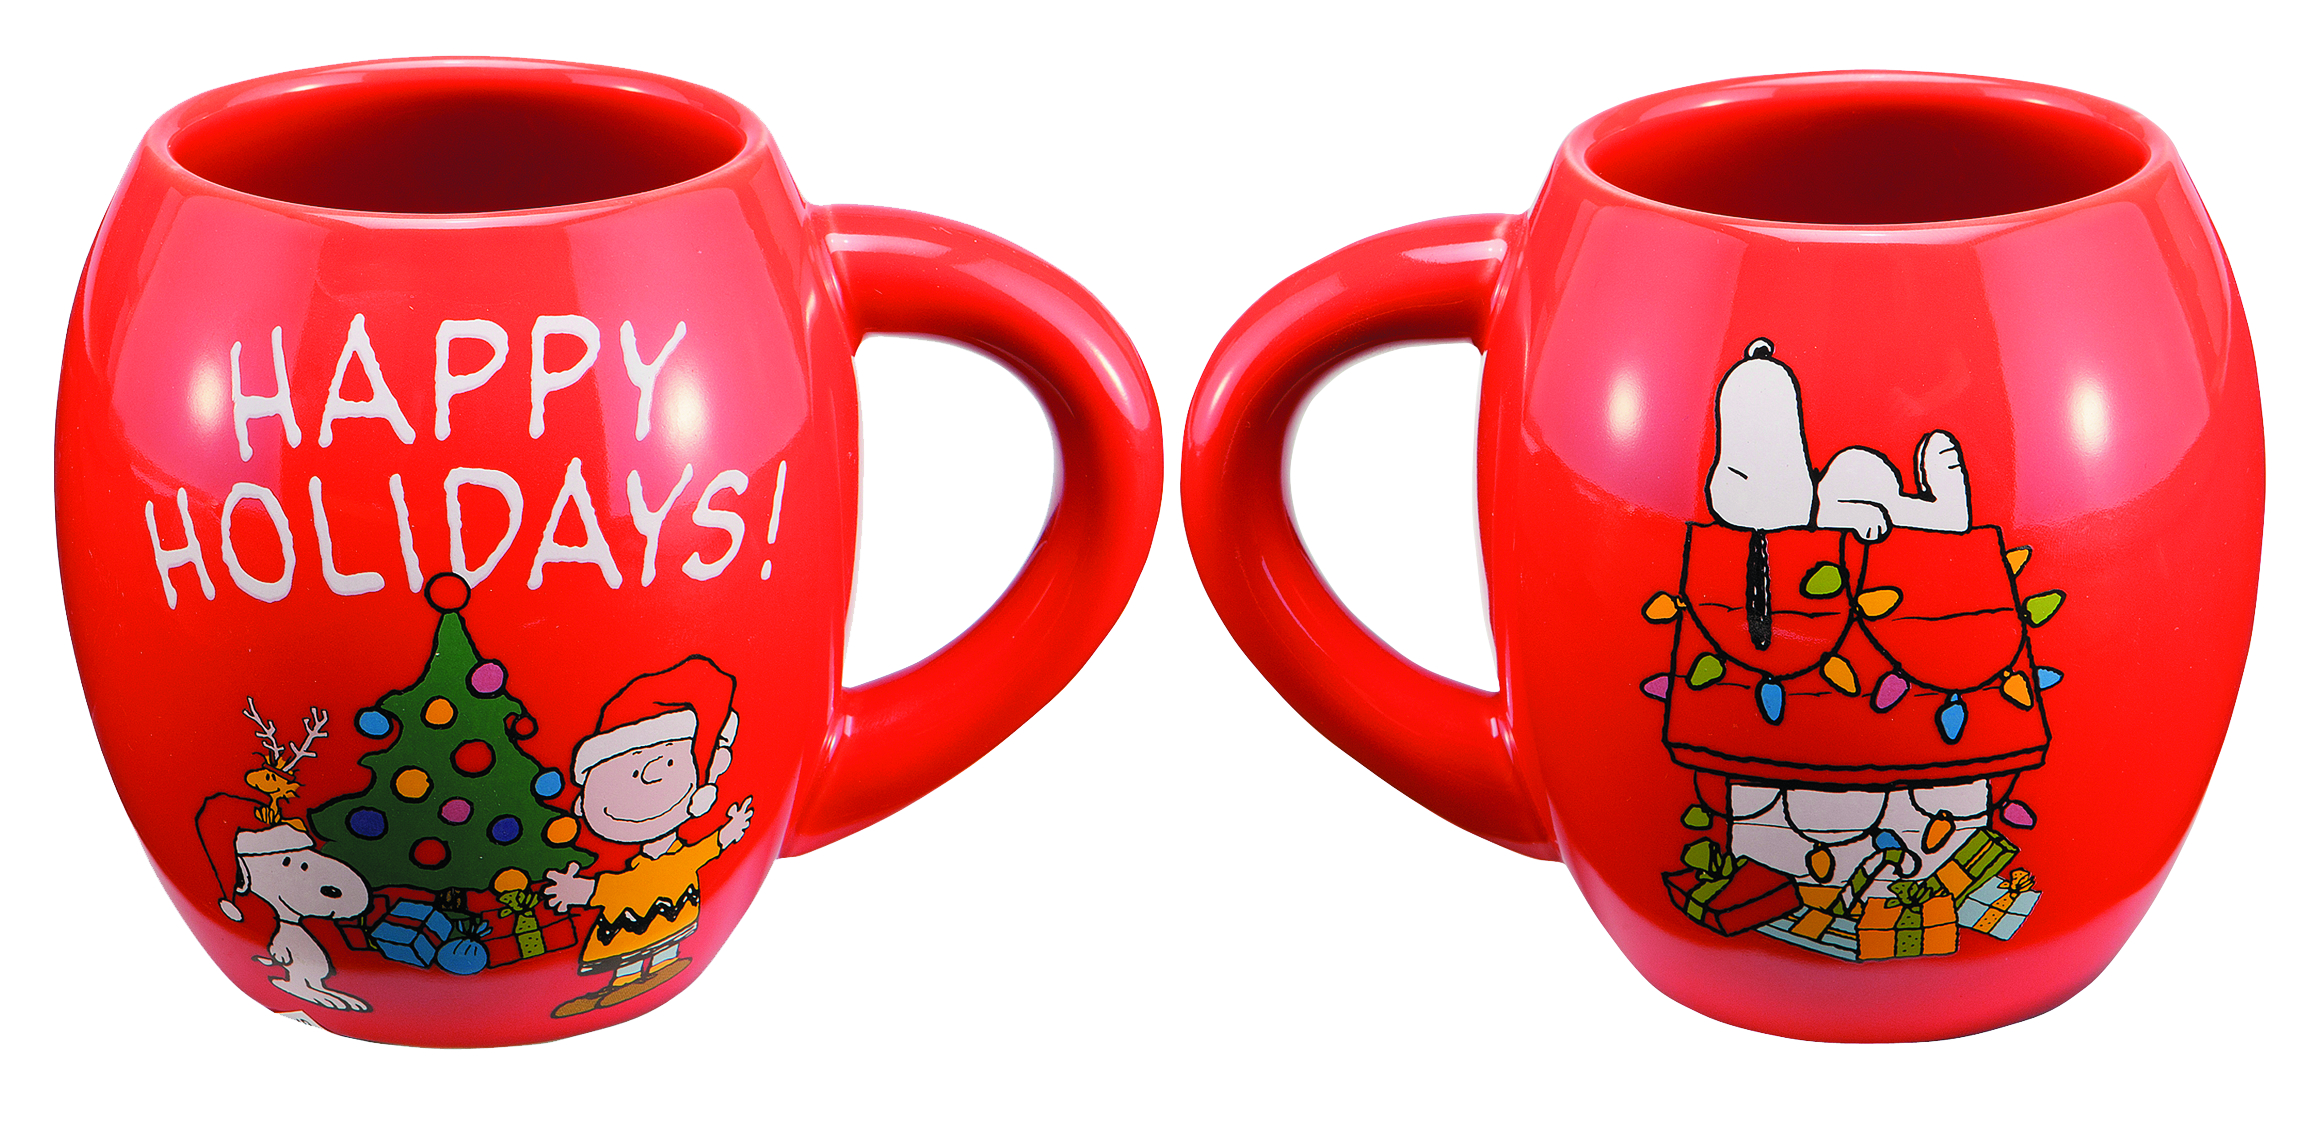 PEANUTS 18OZ CERAMIC OVAL MUG